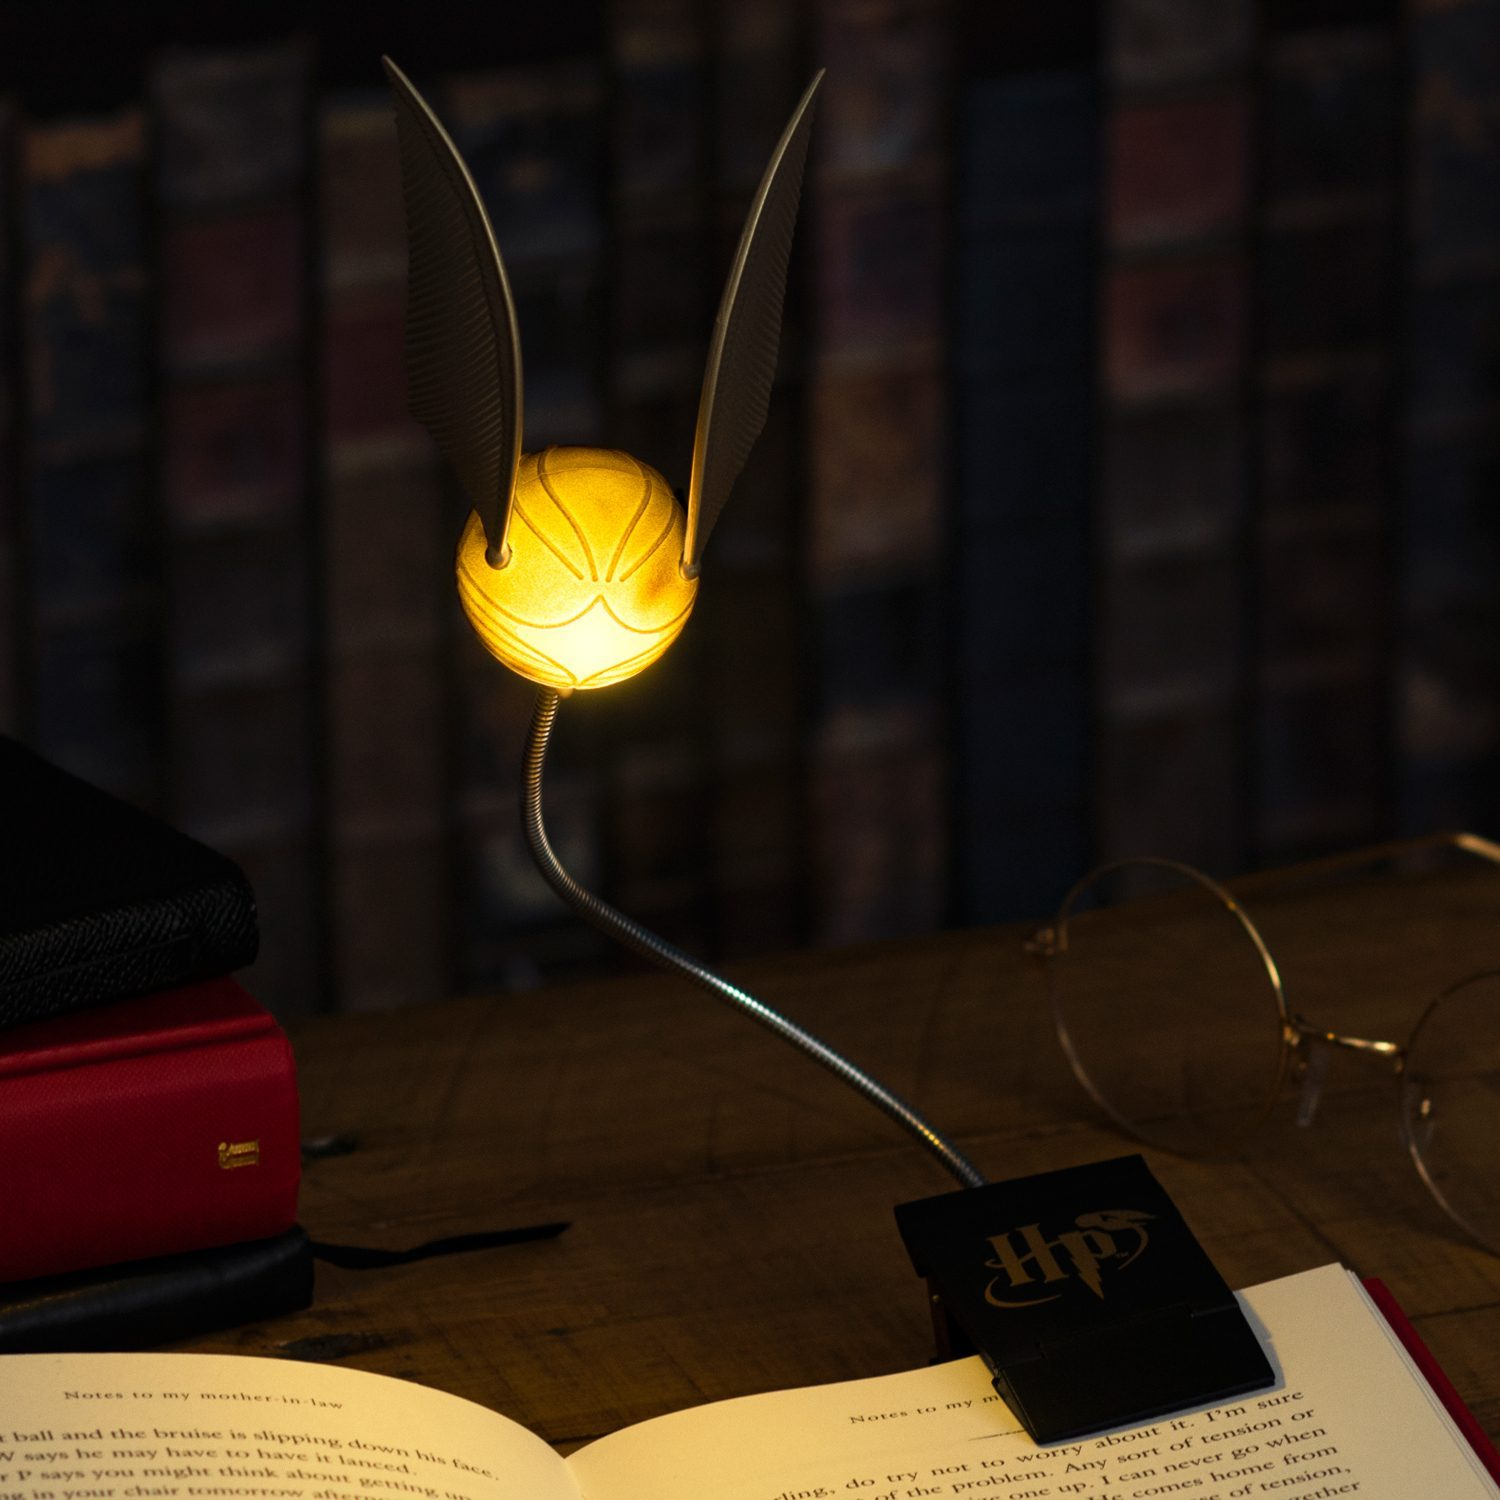 Harry Potter Golden Snitch leeslampje